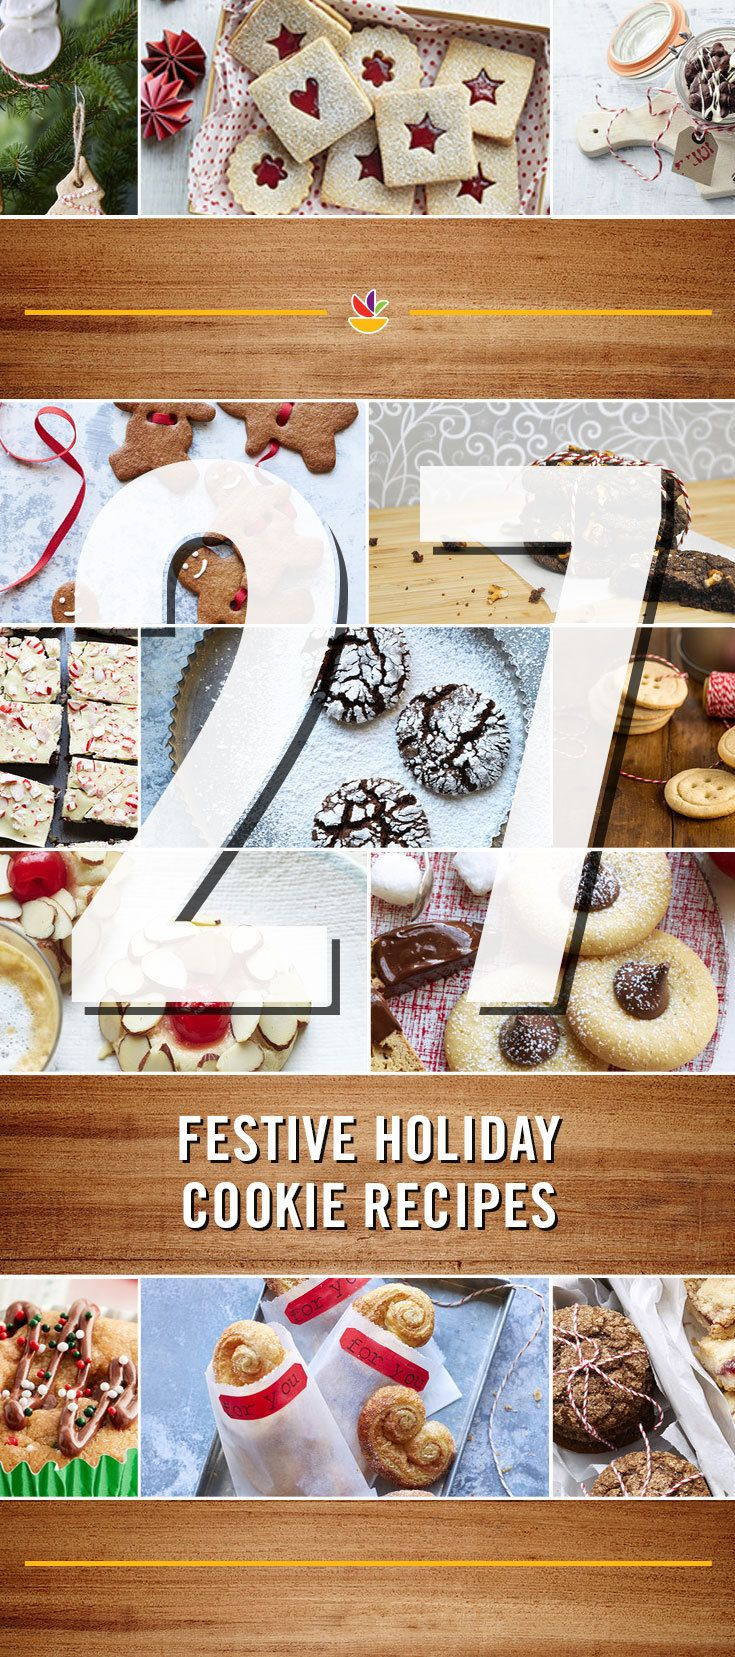 27 Holiday Cookie Recipes! We're counting down to the holiday with recipe and menu ideas. Check it out here: https://www.pinterest.com/martinsfoods/12-days-of-delicious/